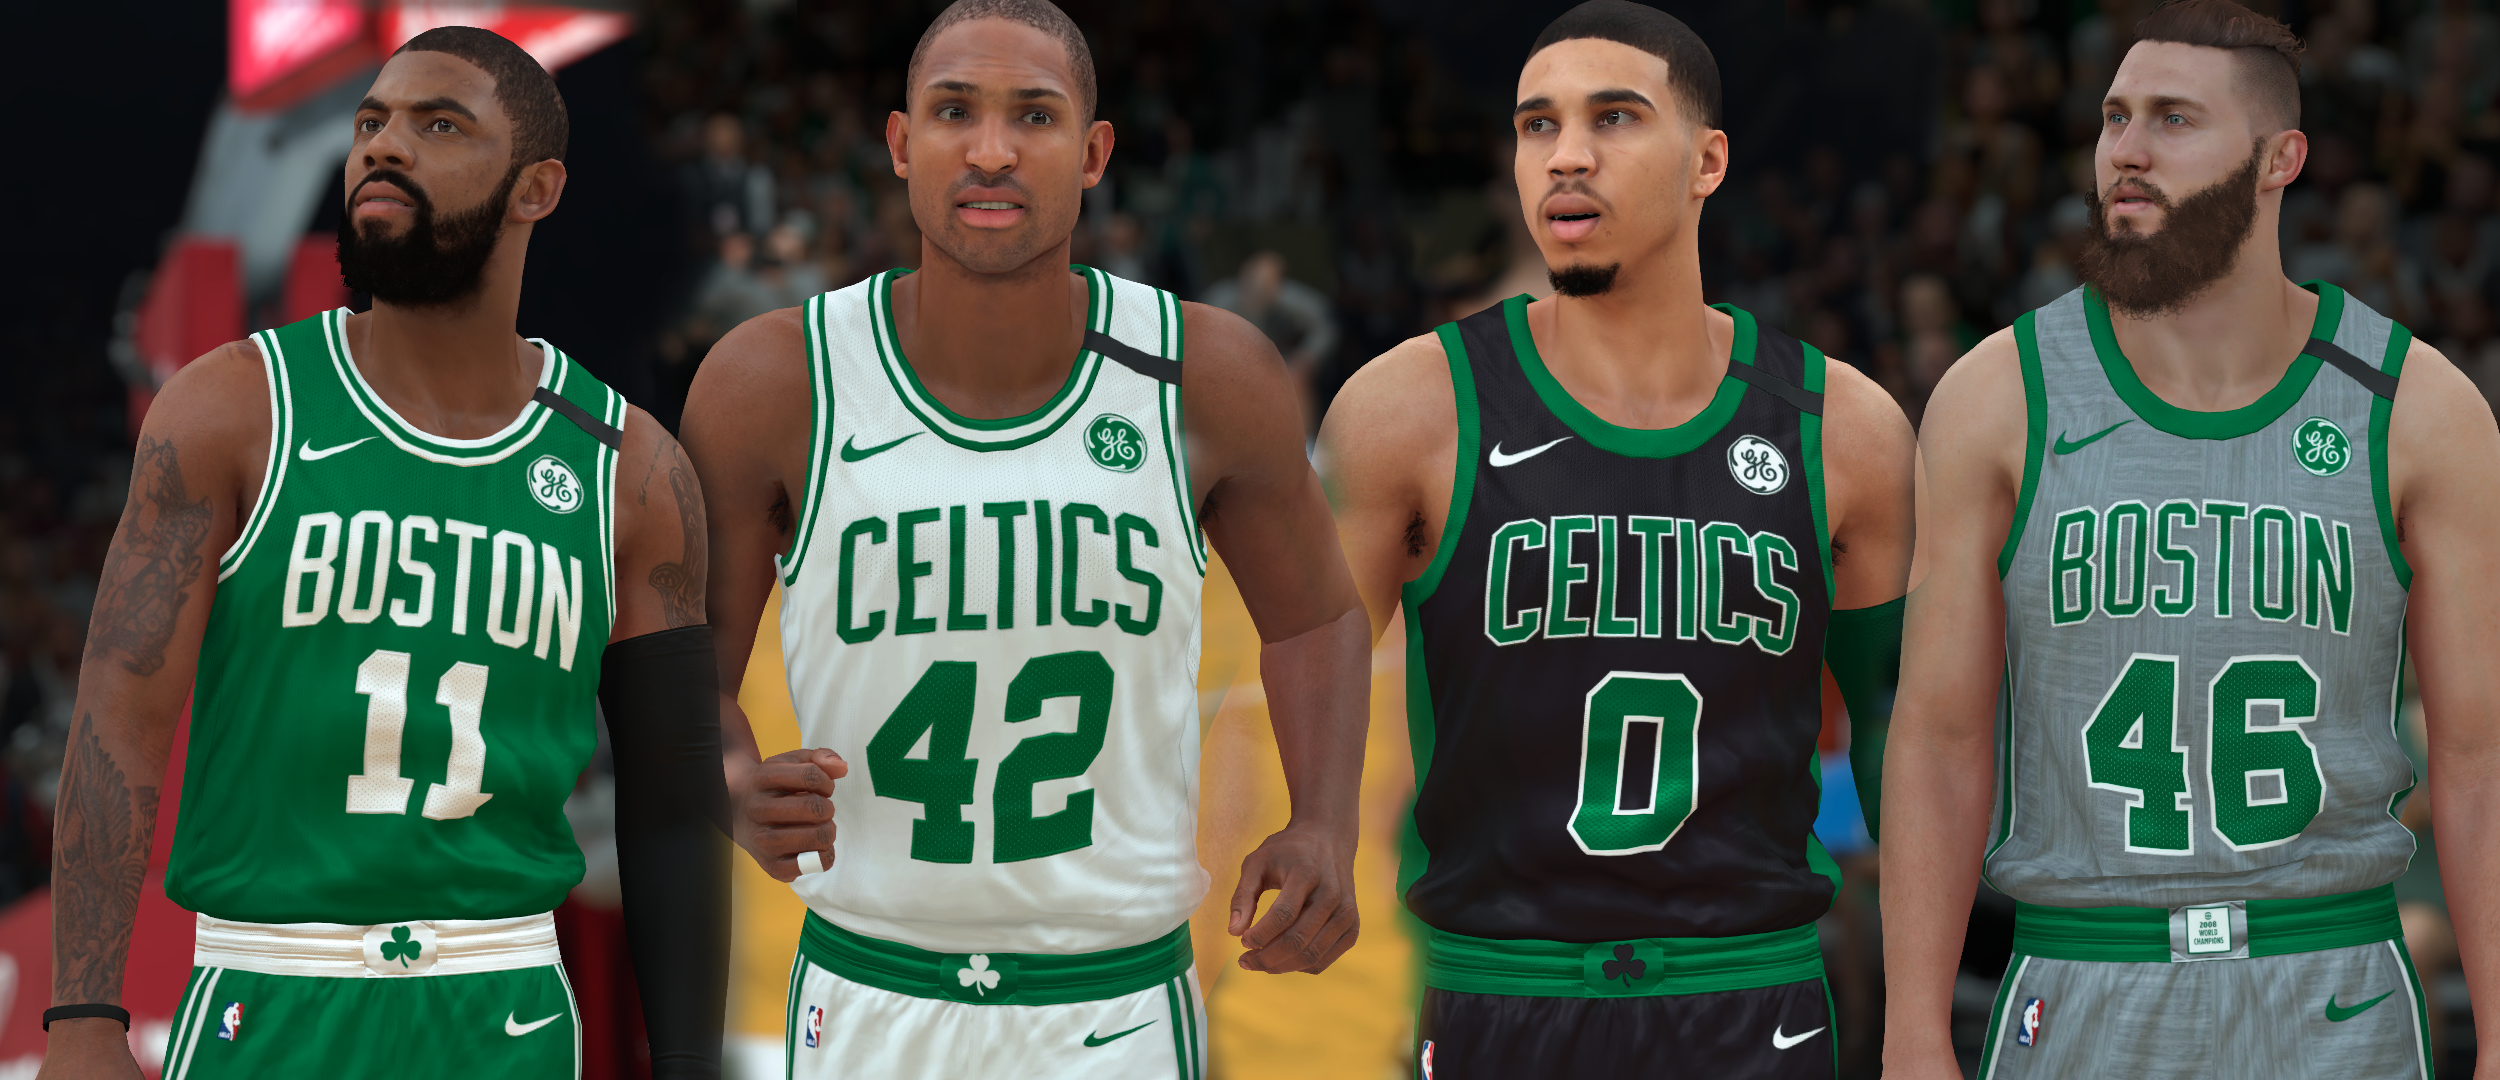 NLSC Forum • Downloads - Boston Celtics Jersey with Blackstripe ... f04657463